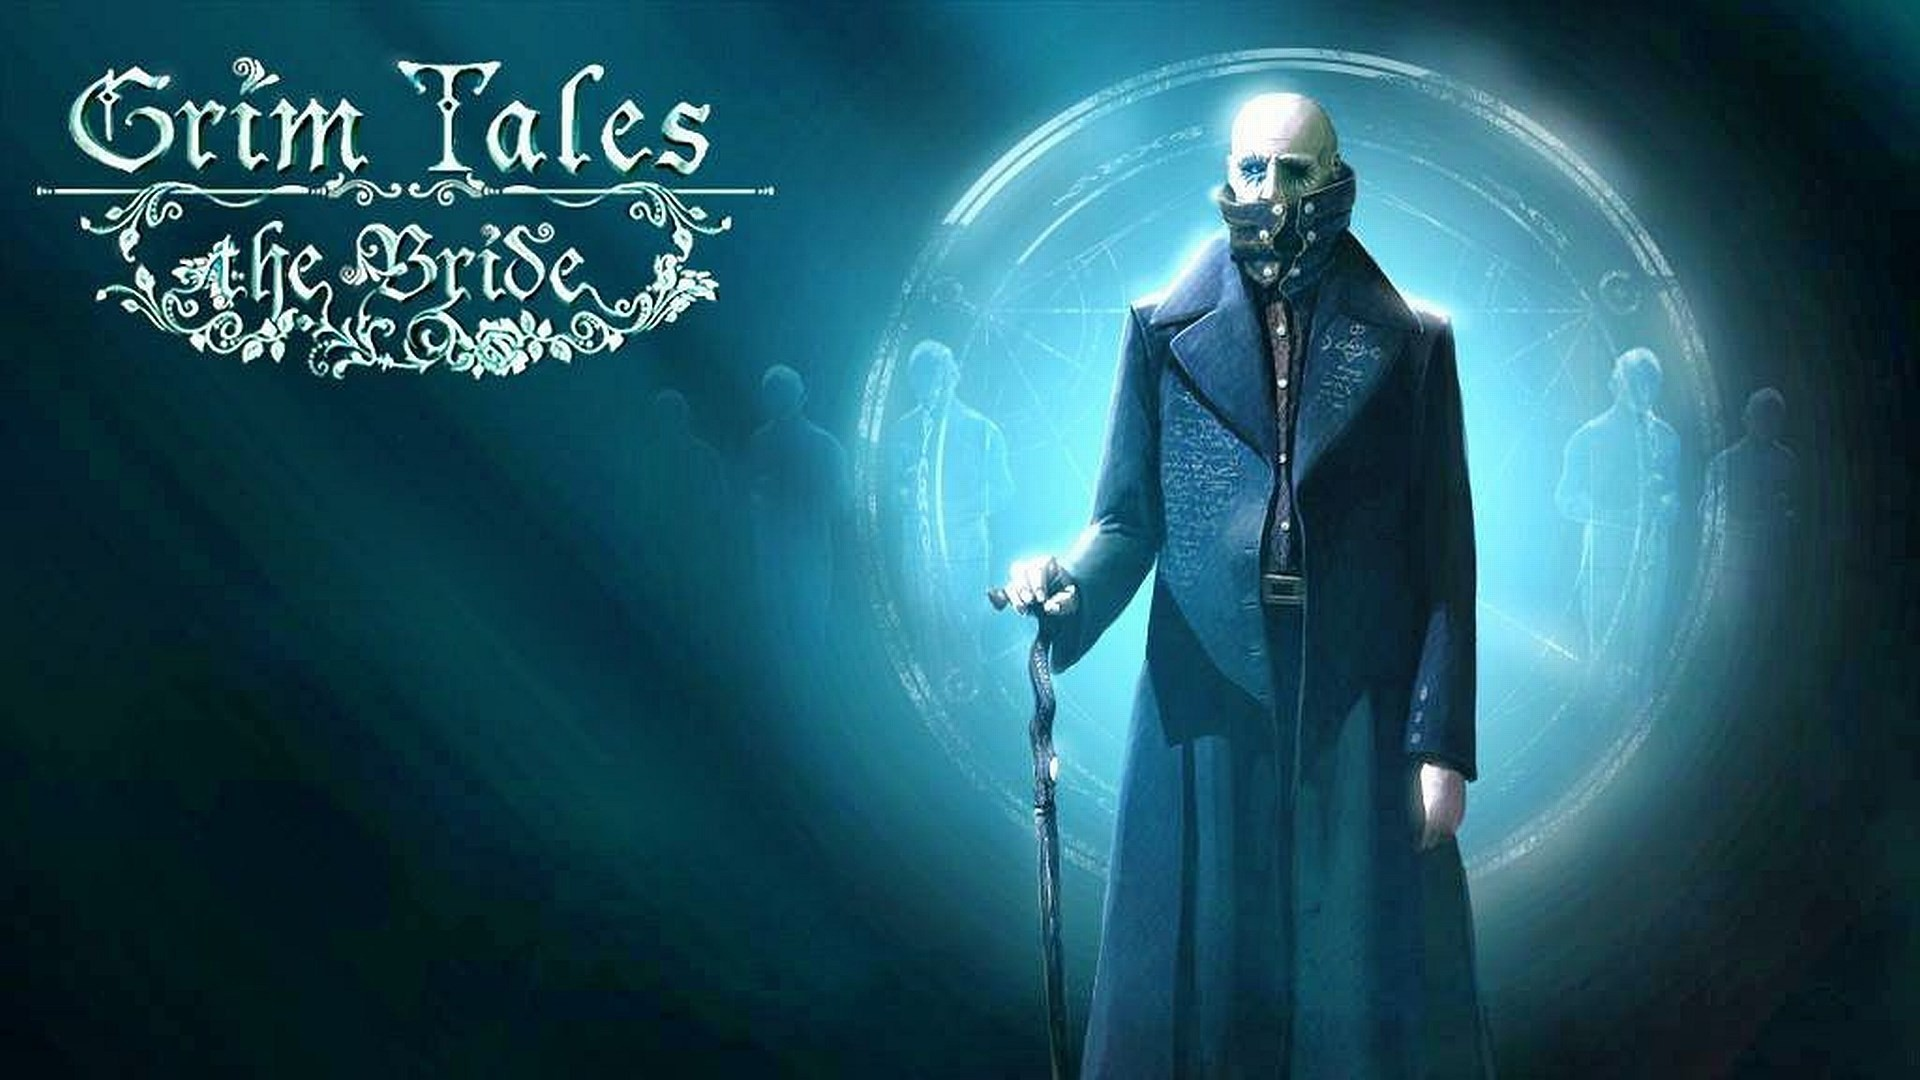 free screensaver wallpapers for grim tales